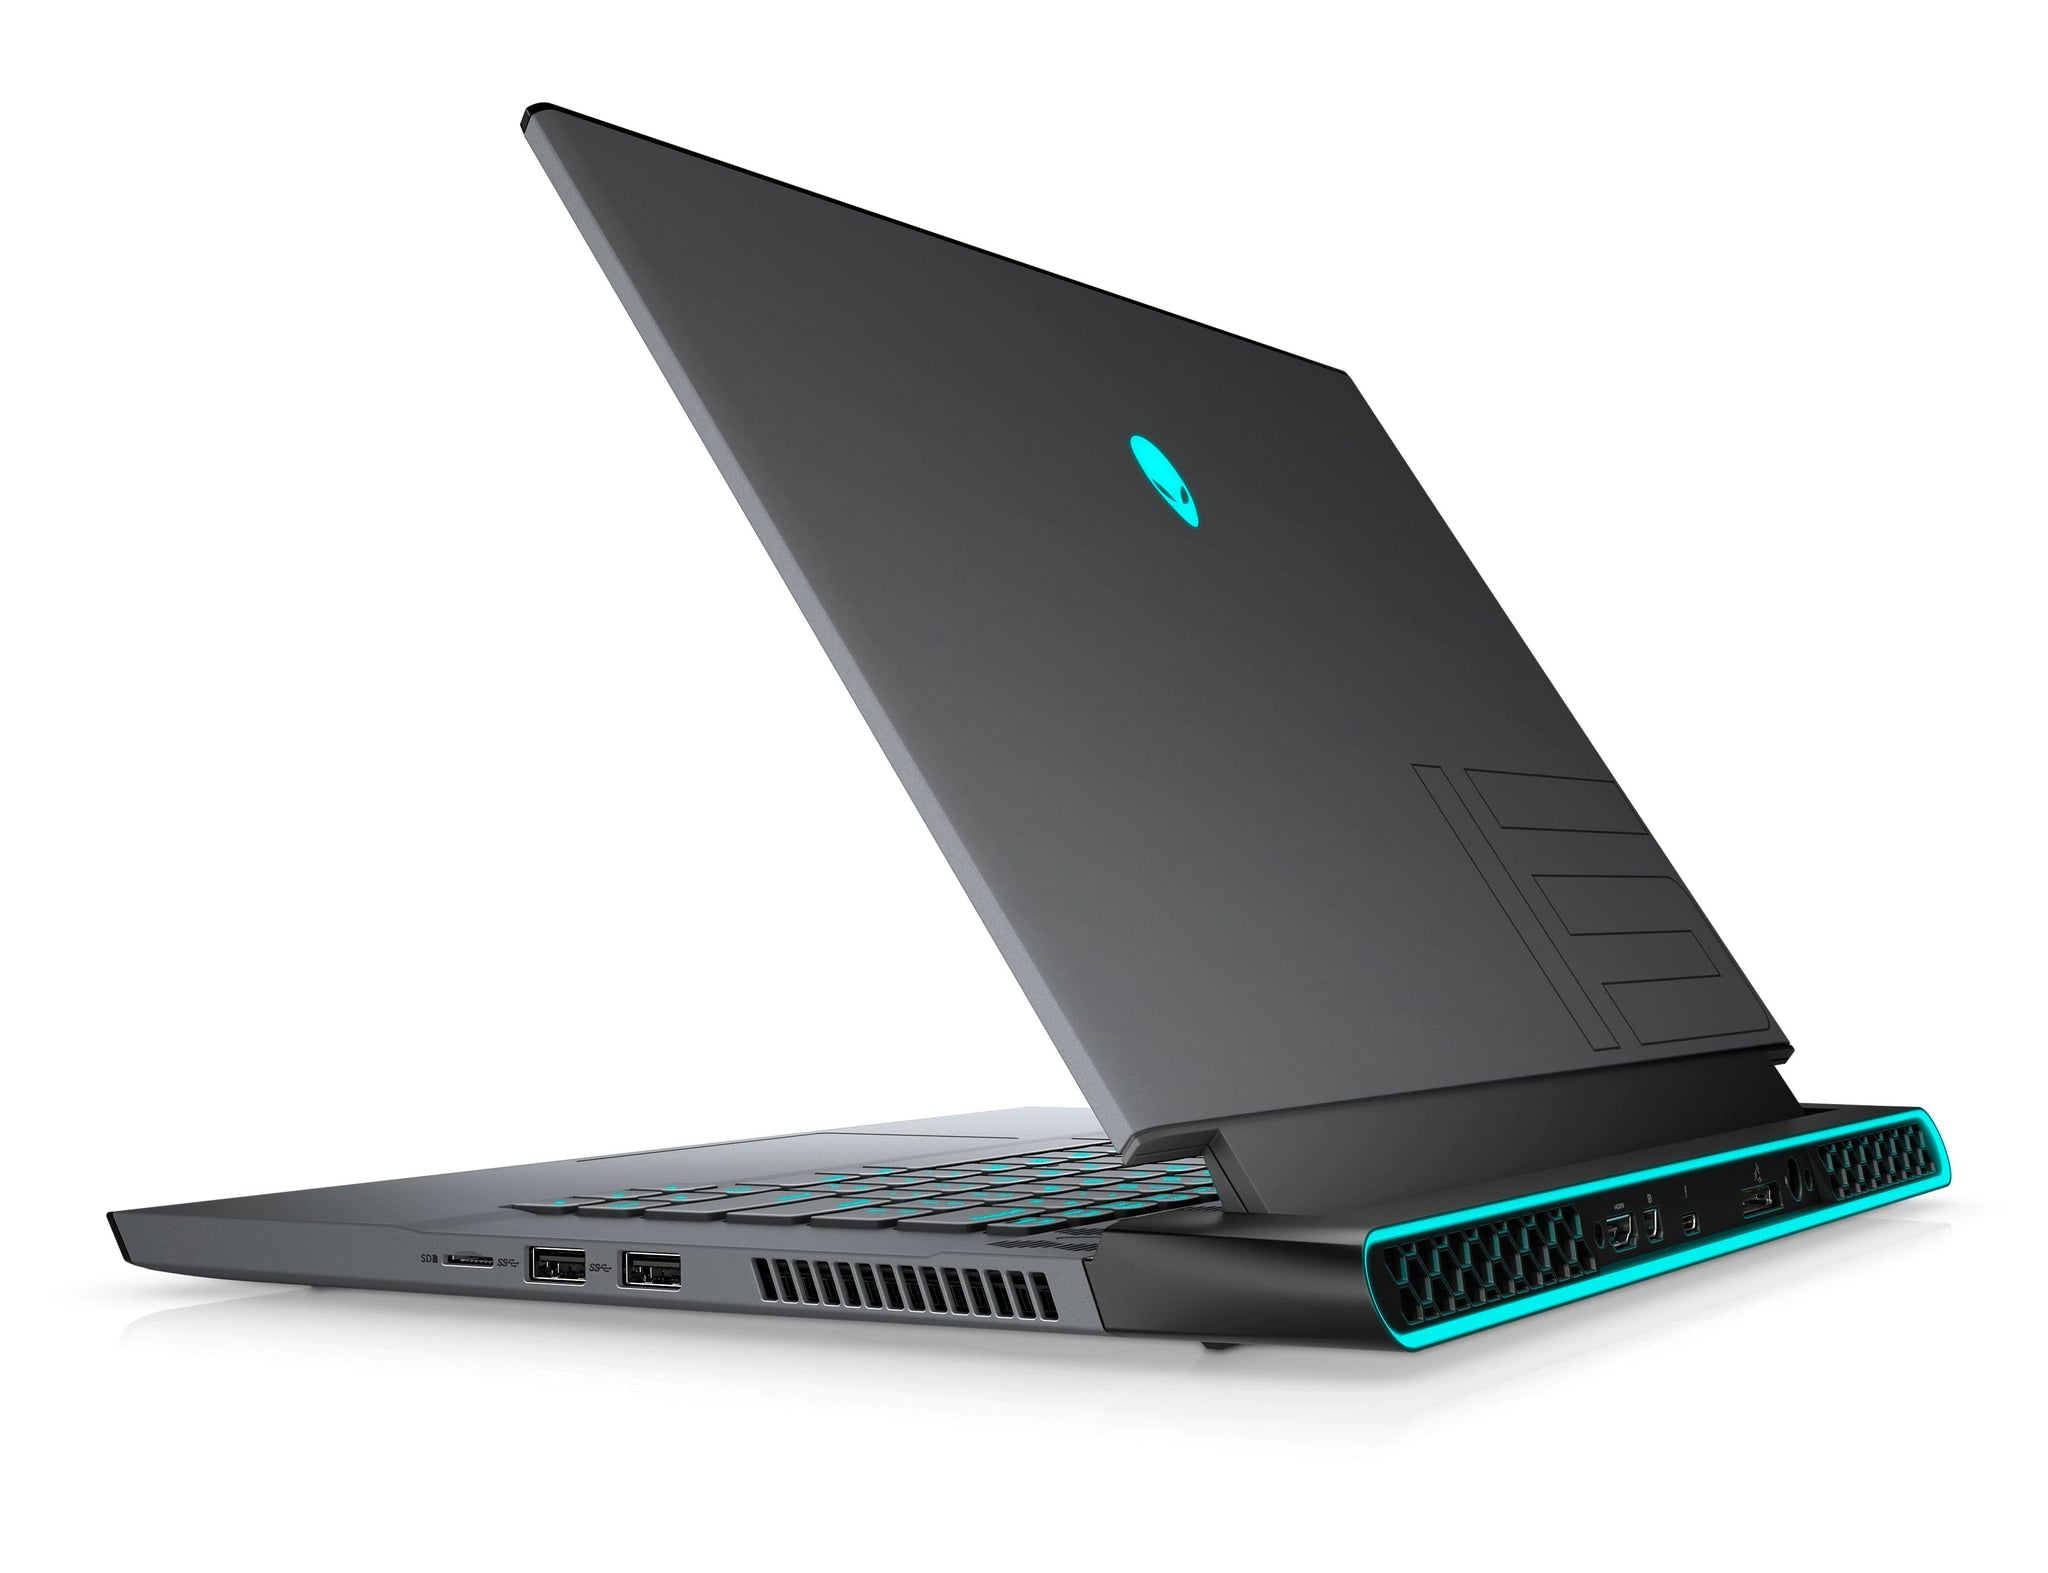 Alienware M15 R4 Gaming Laptop 15.6'' 144Hz 100% SRGB FHD, Intel Core i7-10870H 8-Core up to 5GHz, RTX 3060 6GB GPU, 16GB RAM, 512GB SSD,  RGB LED AlienFX Keyboard, Windows 10, English Keyboard, Dark Side of the Moon